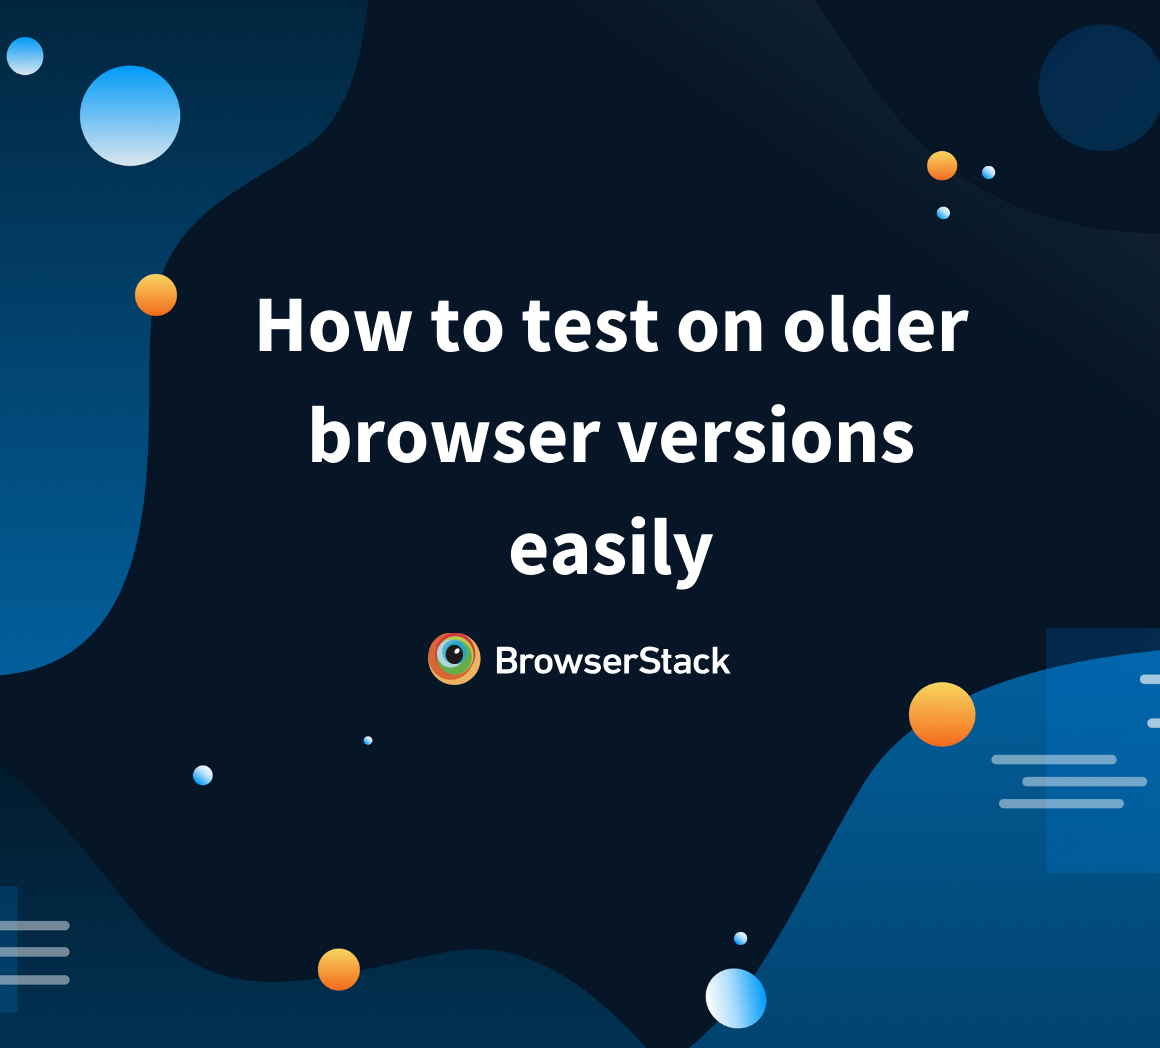 How to test on older browser versions